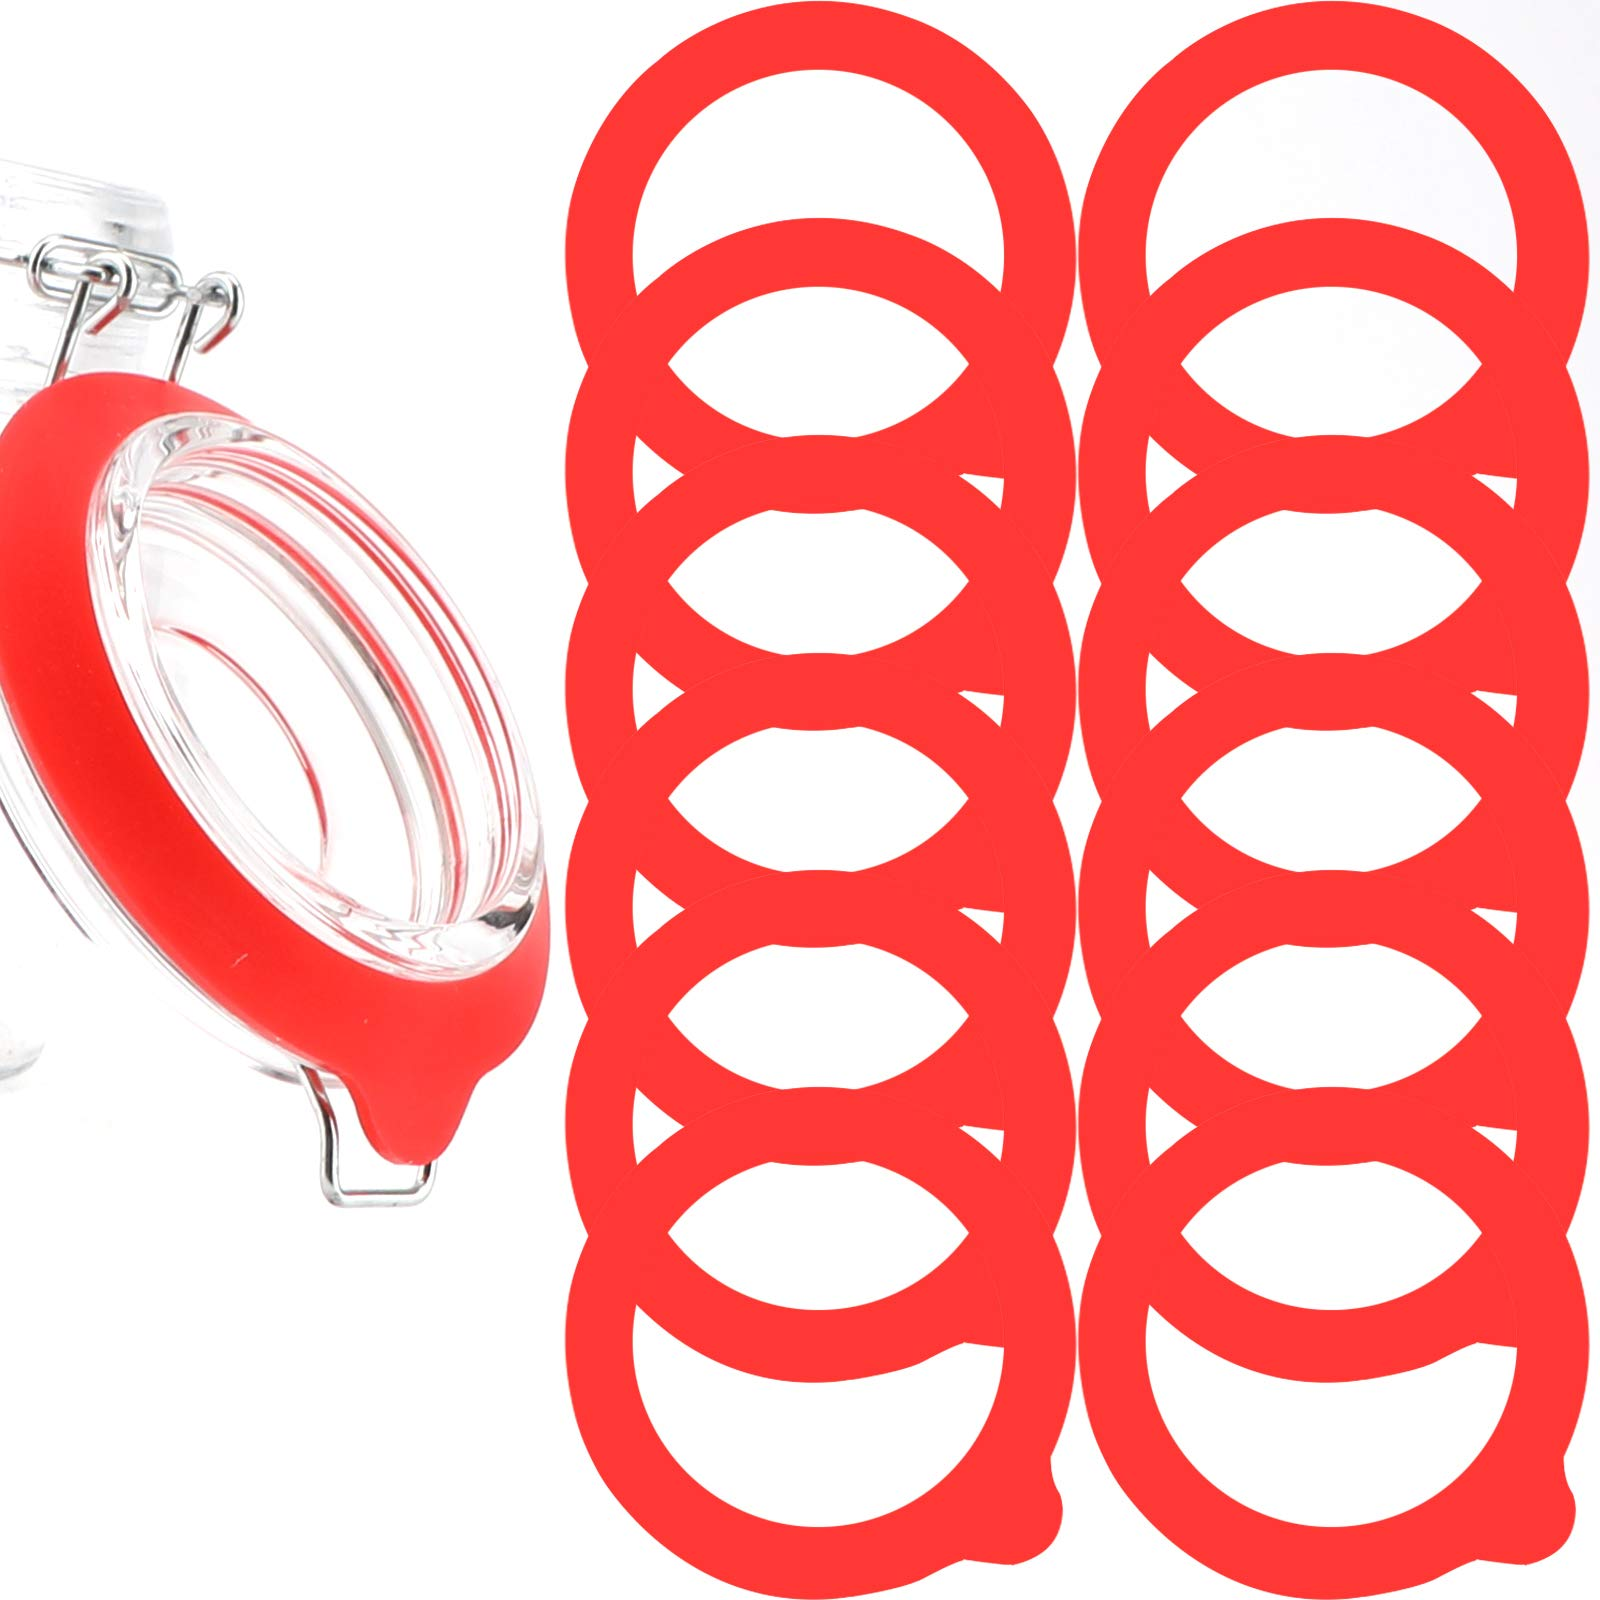 LUTER 12Pcs Silicone Jar Gaskets Replacement, Leak Proof Silicone Gasket Airtight Seals Rings for Mason Jar Lid, Regular Wide Mouth Glass Jars (Red)